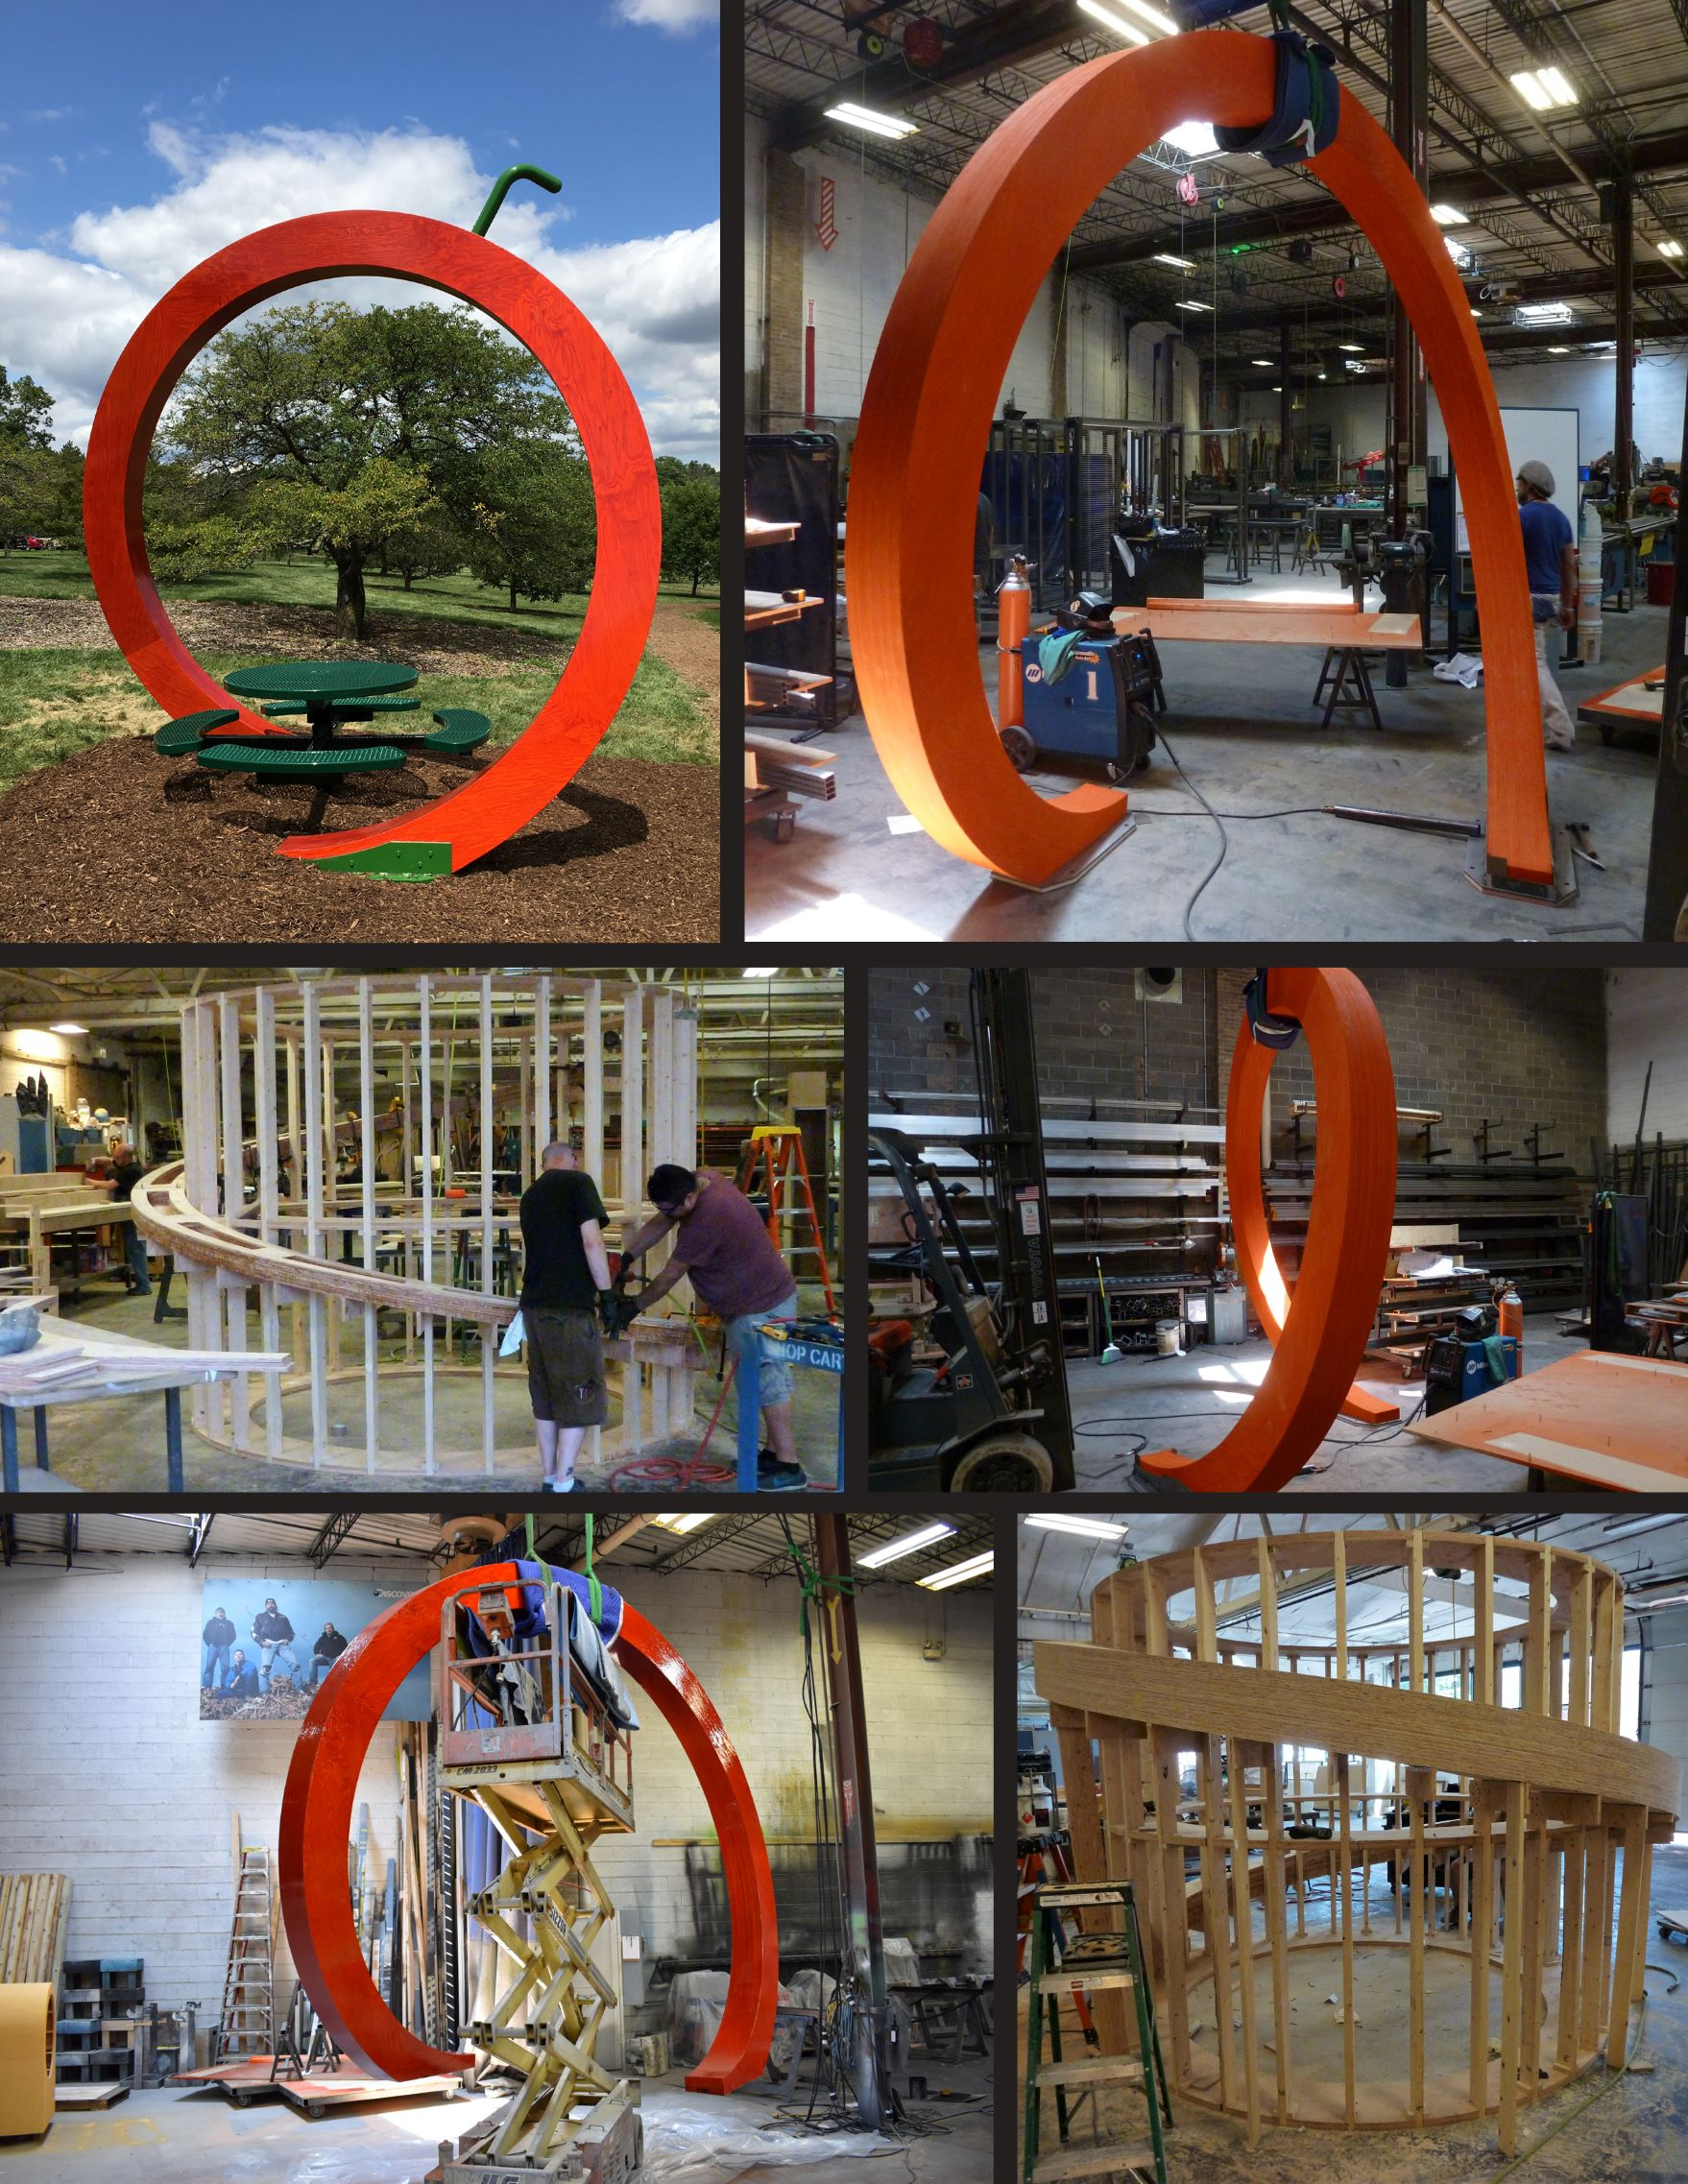 Custom Woodworking and Fabrication of the Crab Apple Sculpture at Morton Arboretum